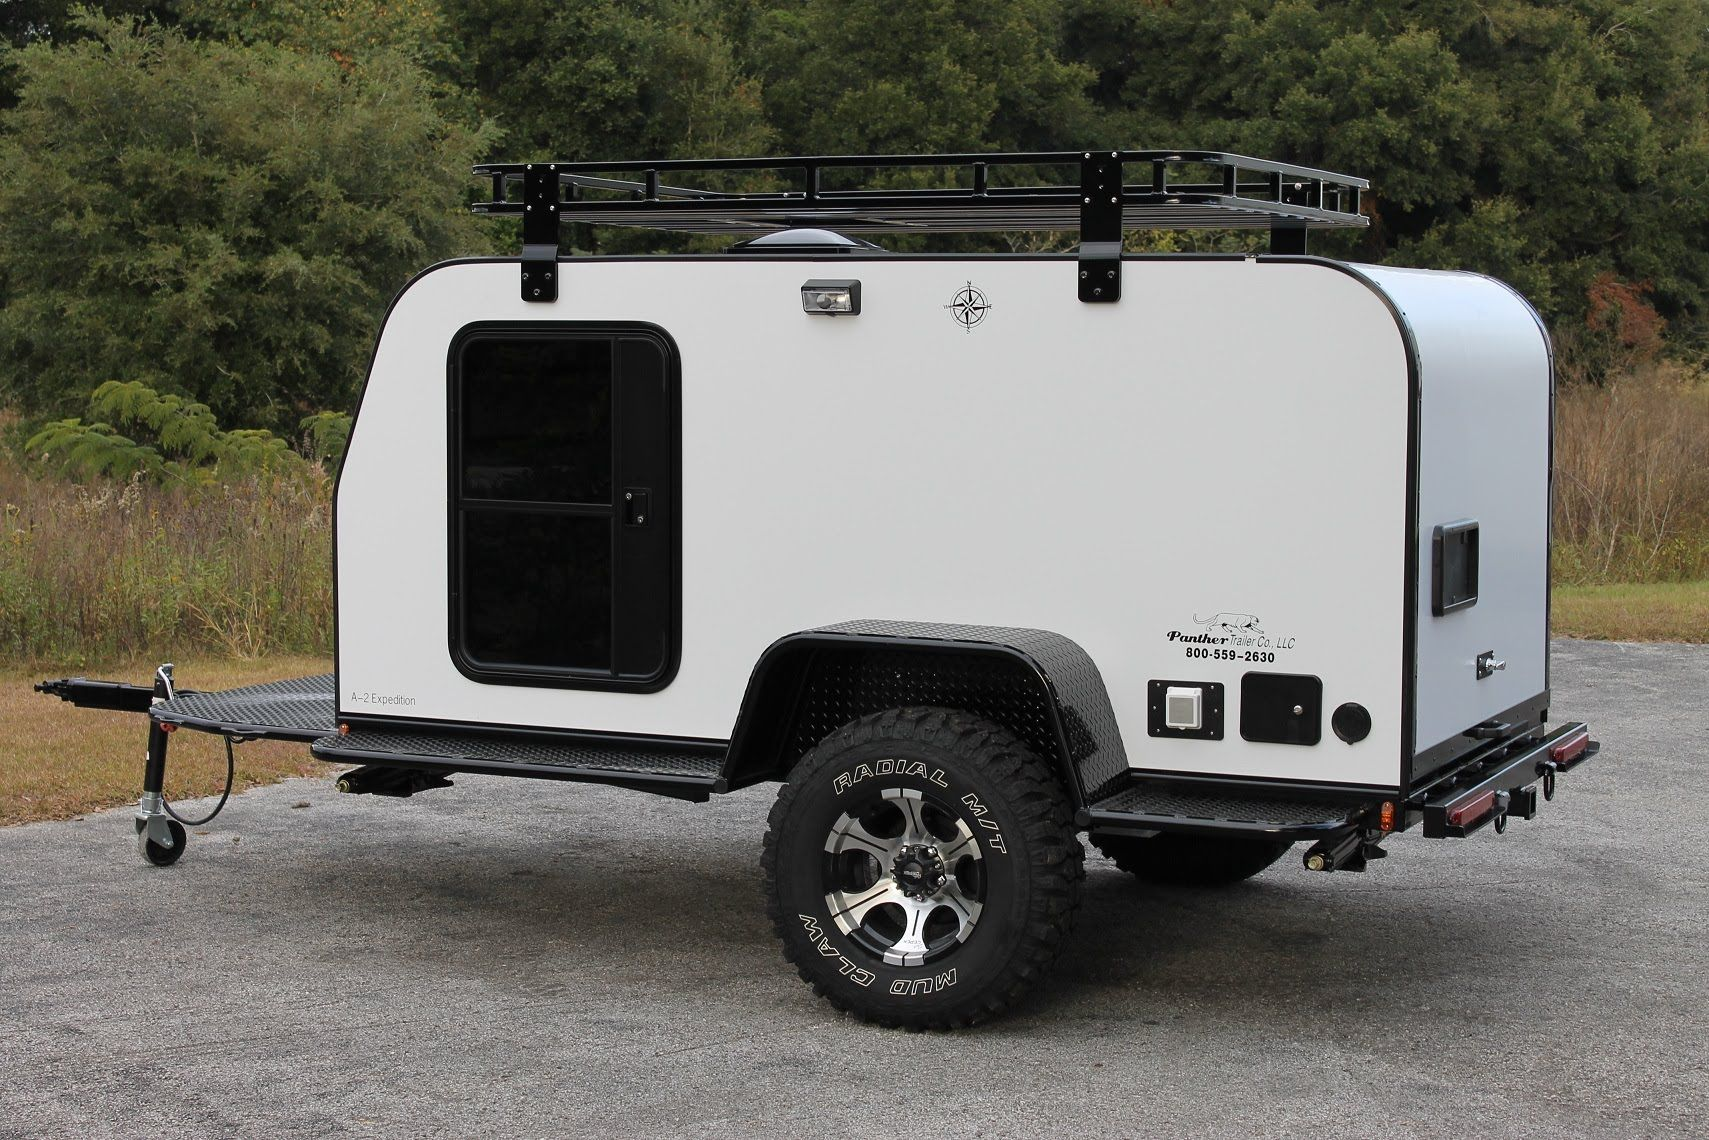 Panther A-2 Expedition Trailer 5x10 | Teartrop Trailer | Diy camper